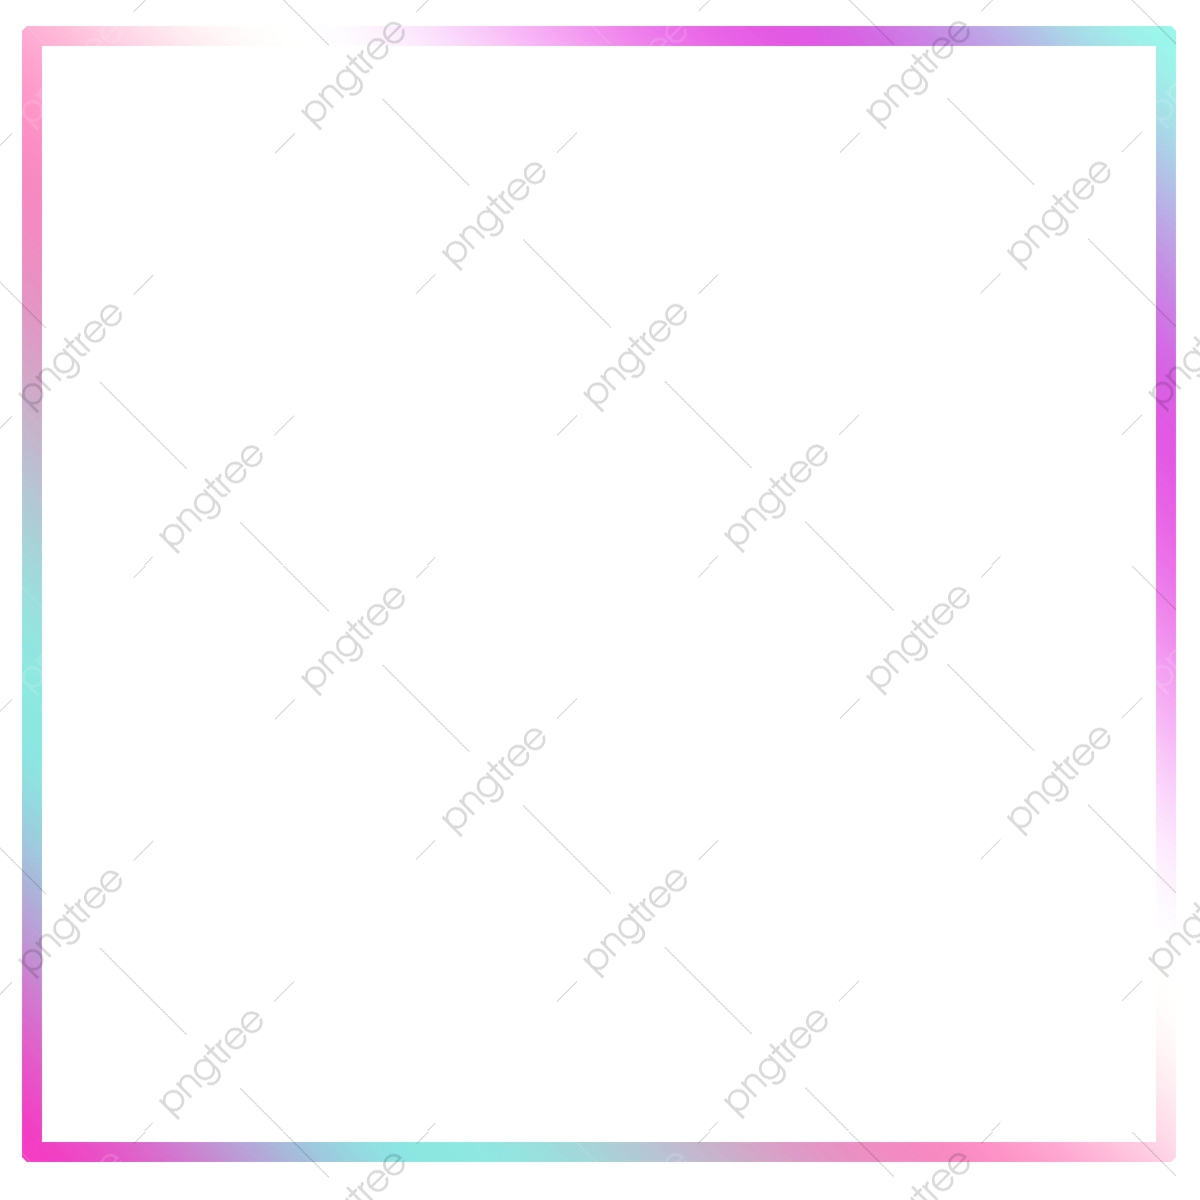 Adobe photoshop clipart border Transparent pictures on F.